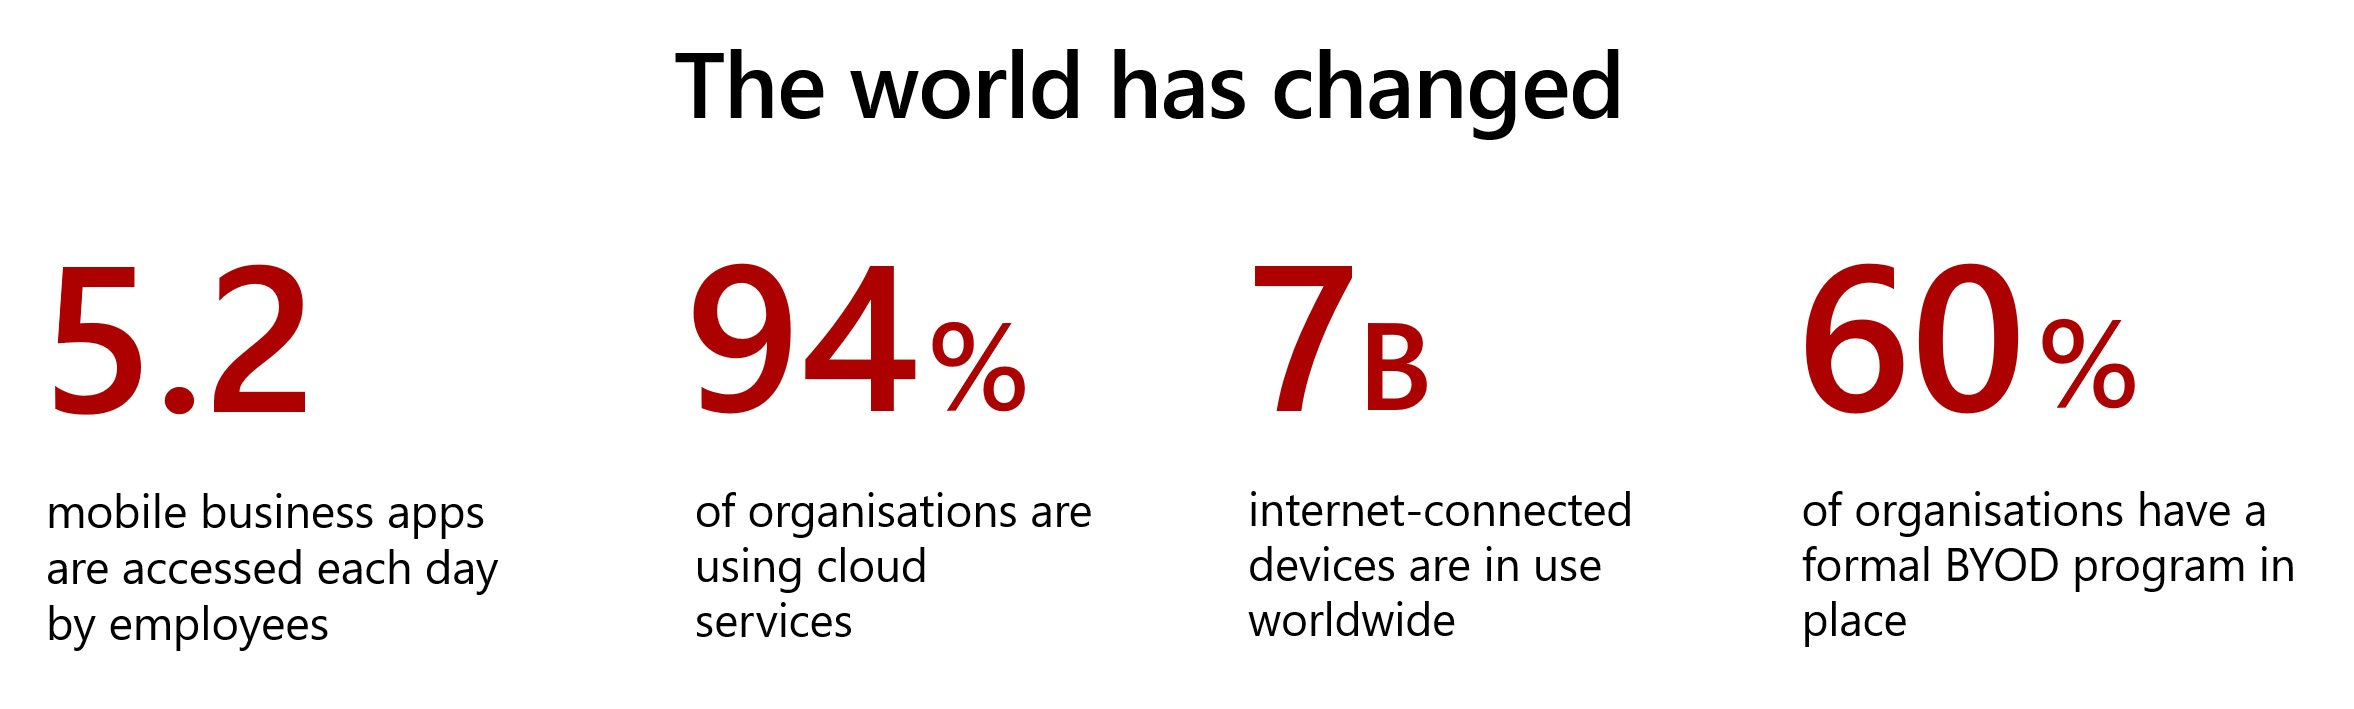 An image outlining some key statistics associated with changing IT practices - more BYOD, more Cloud, and a growing number of devices being used.